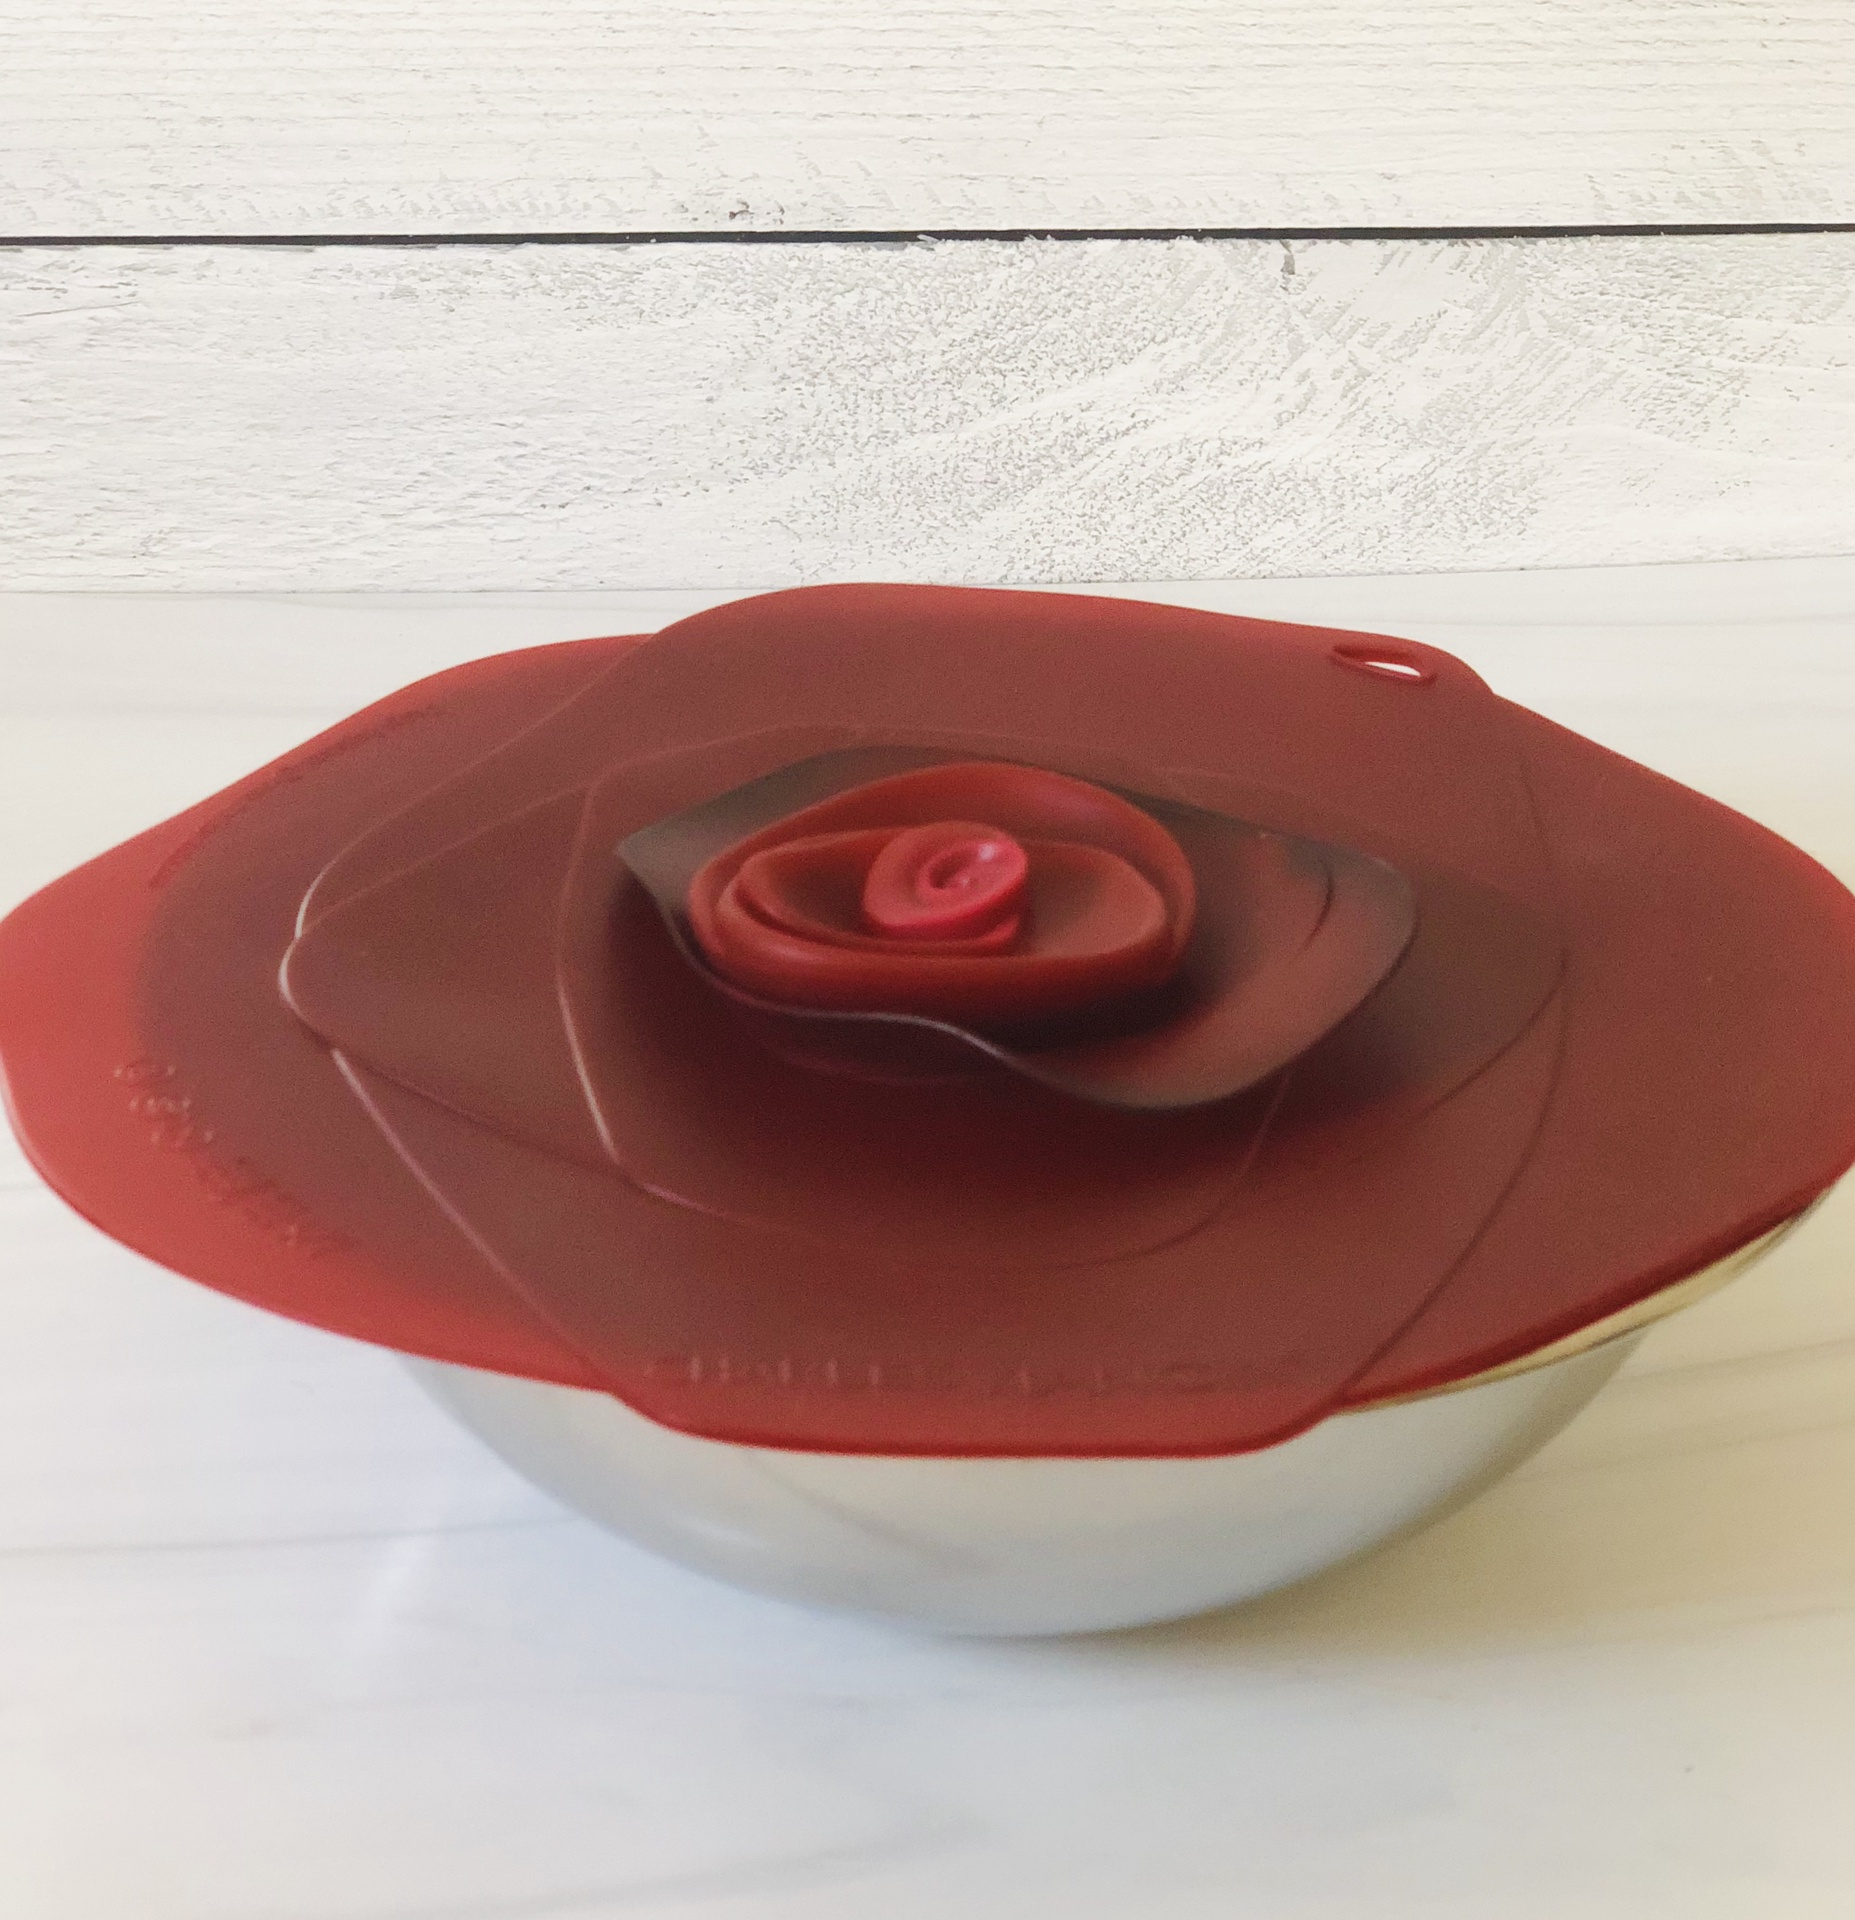 Rose Silicone Lid, various sizes